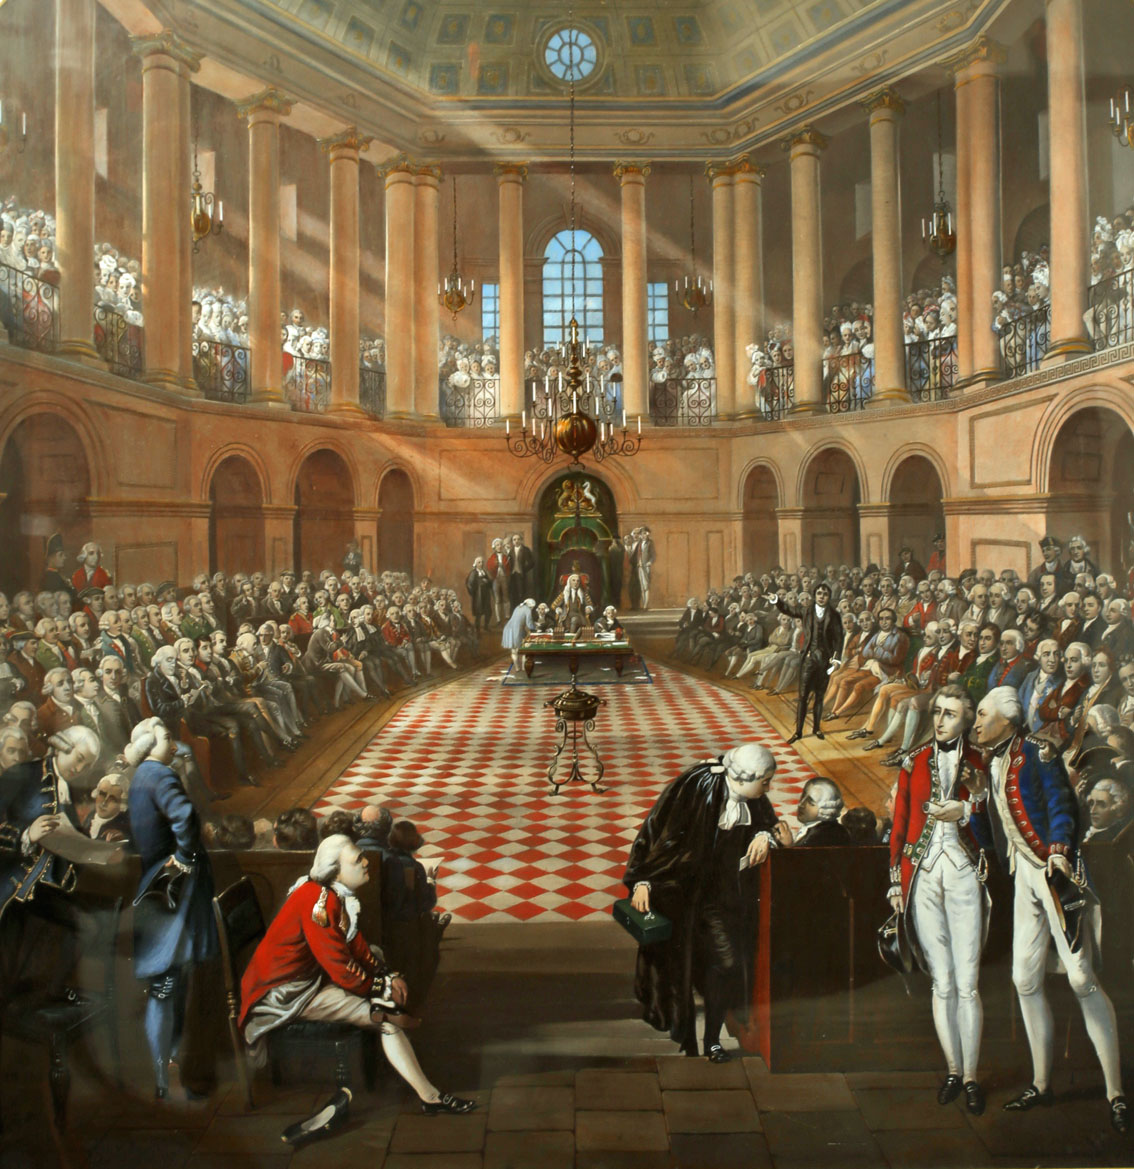 1790 The Irish House of Commons, The Great Parliament of Ireland. After H Barrand and J Hayter, - Image 2 of 3